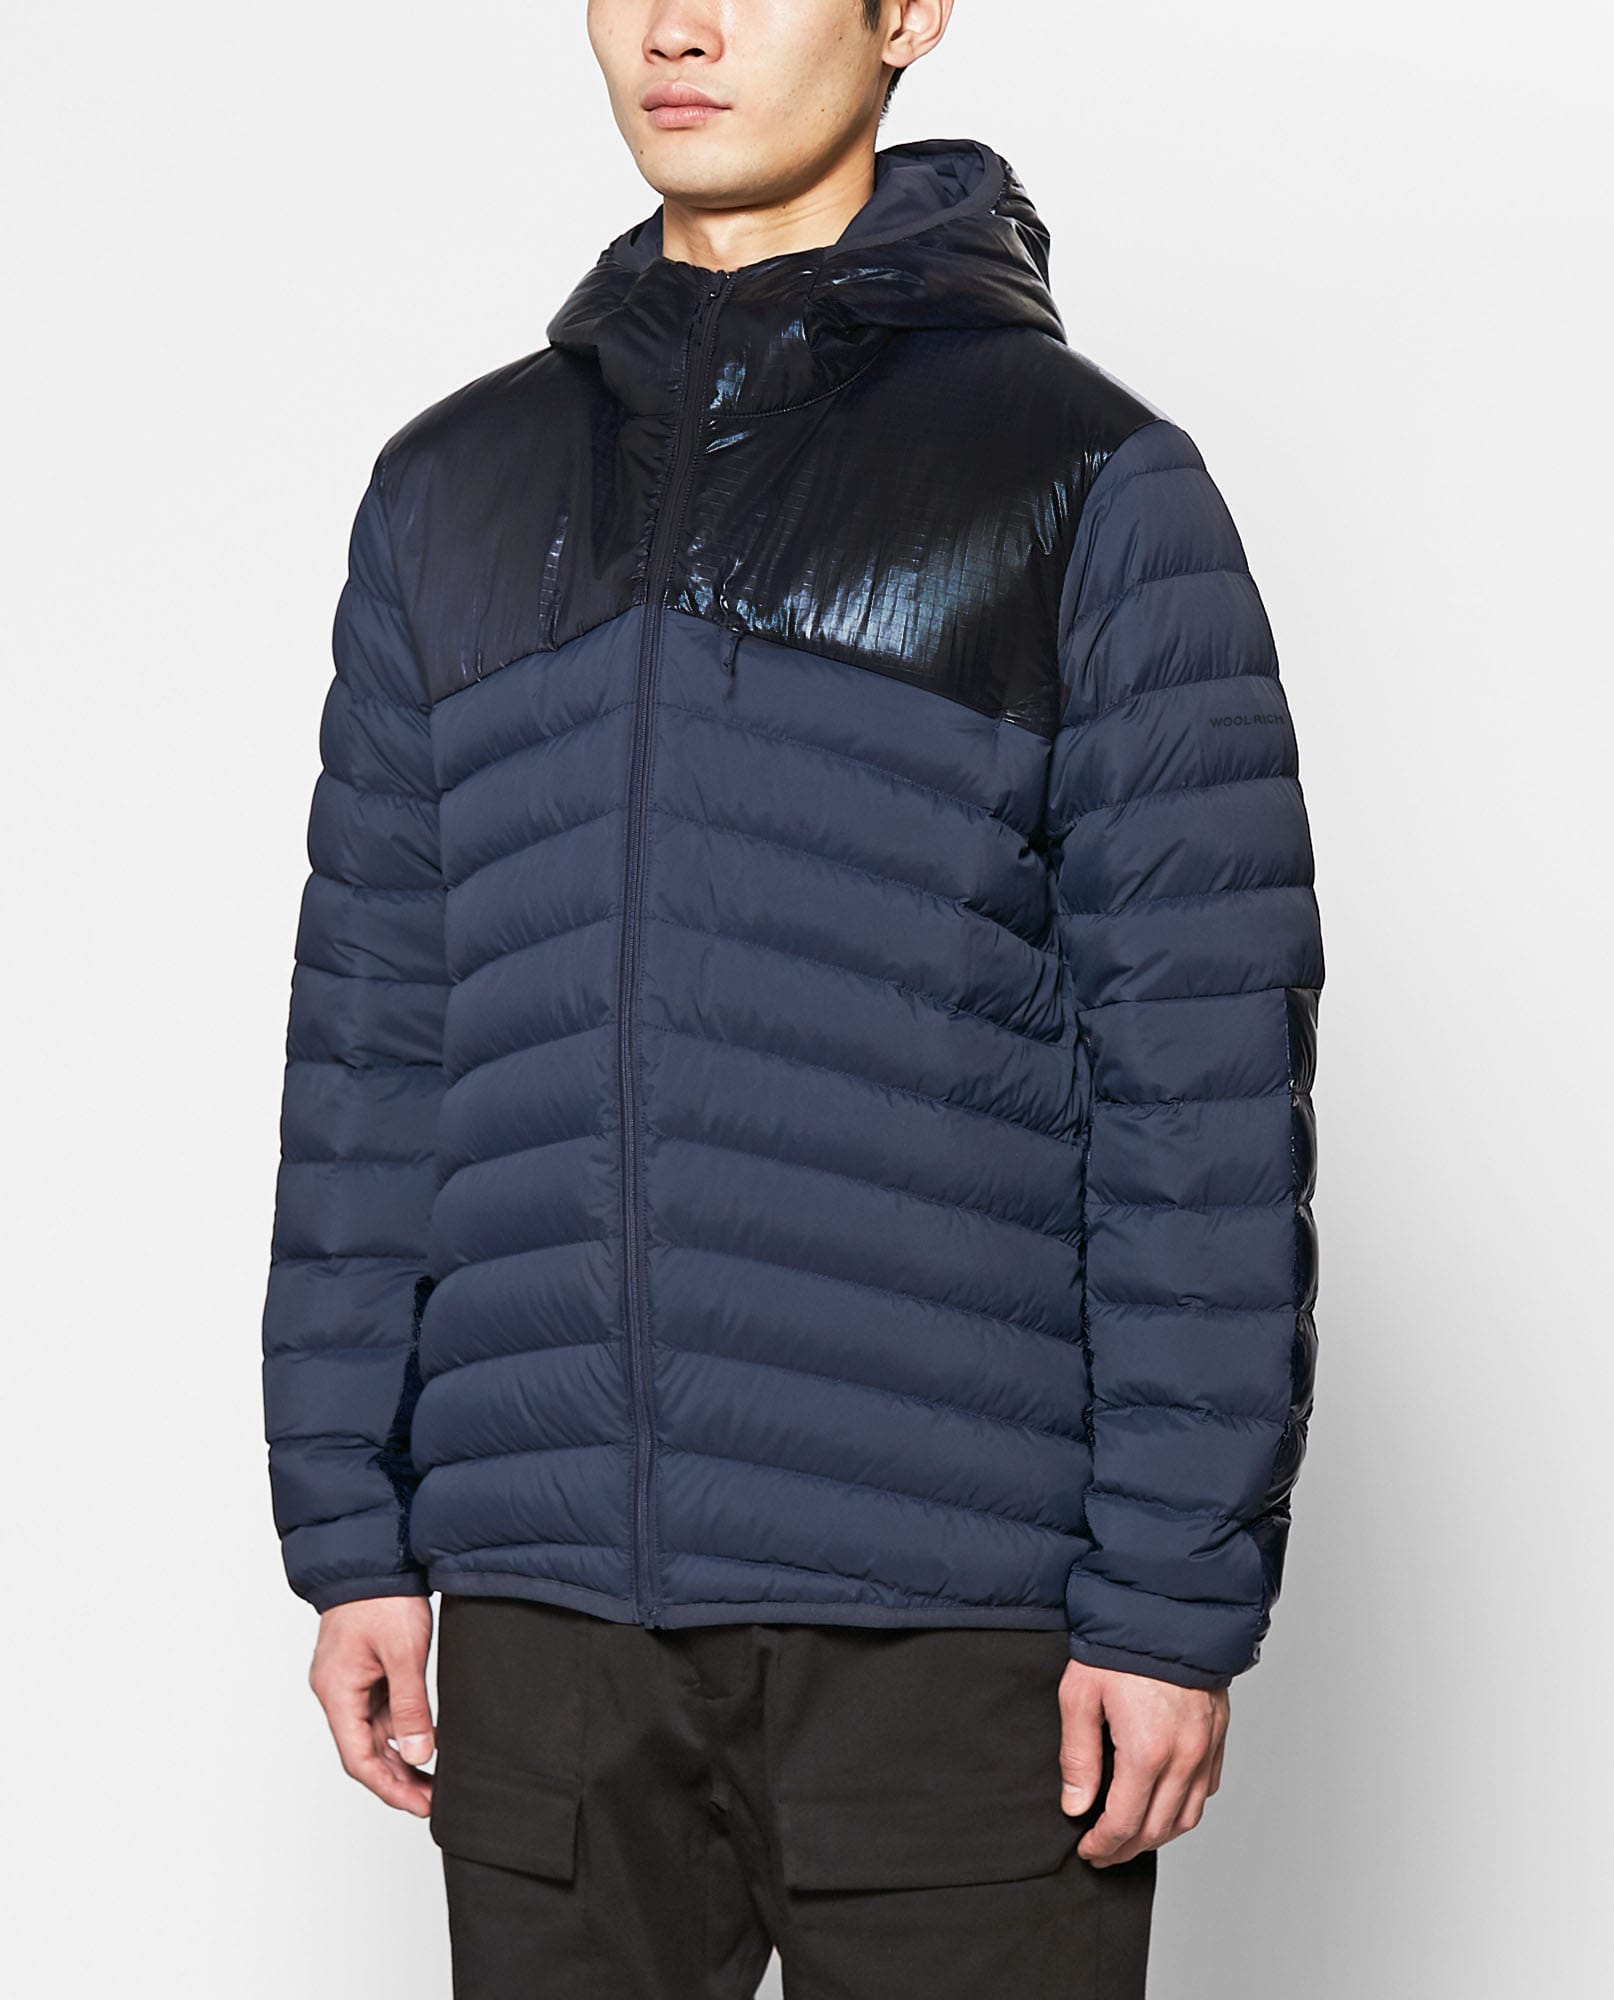 TUNDRA DOWN JACKET